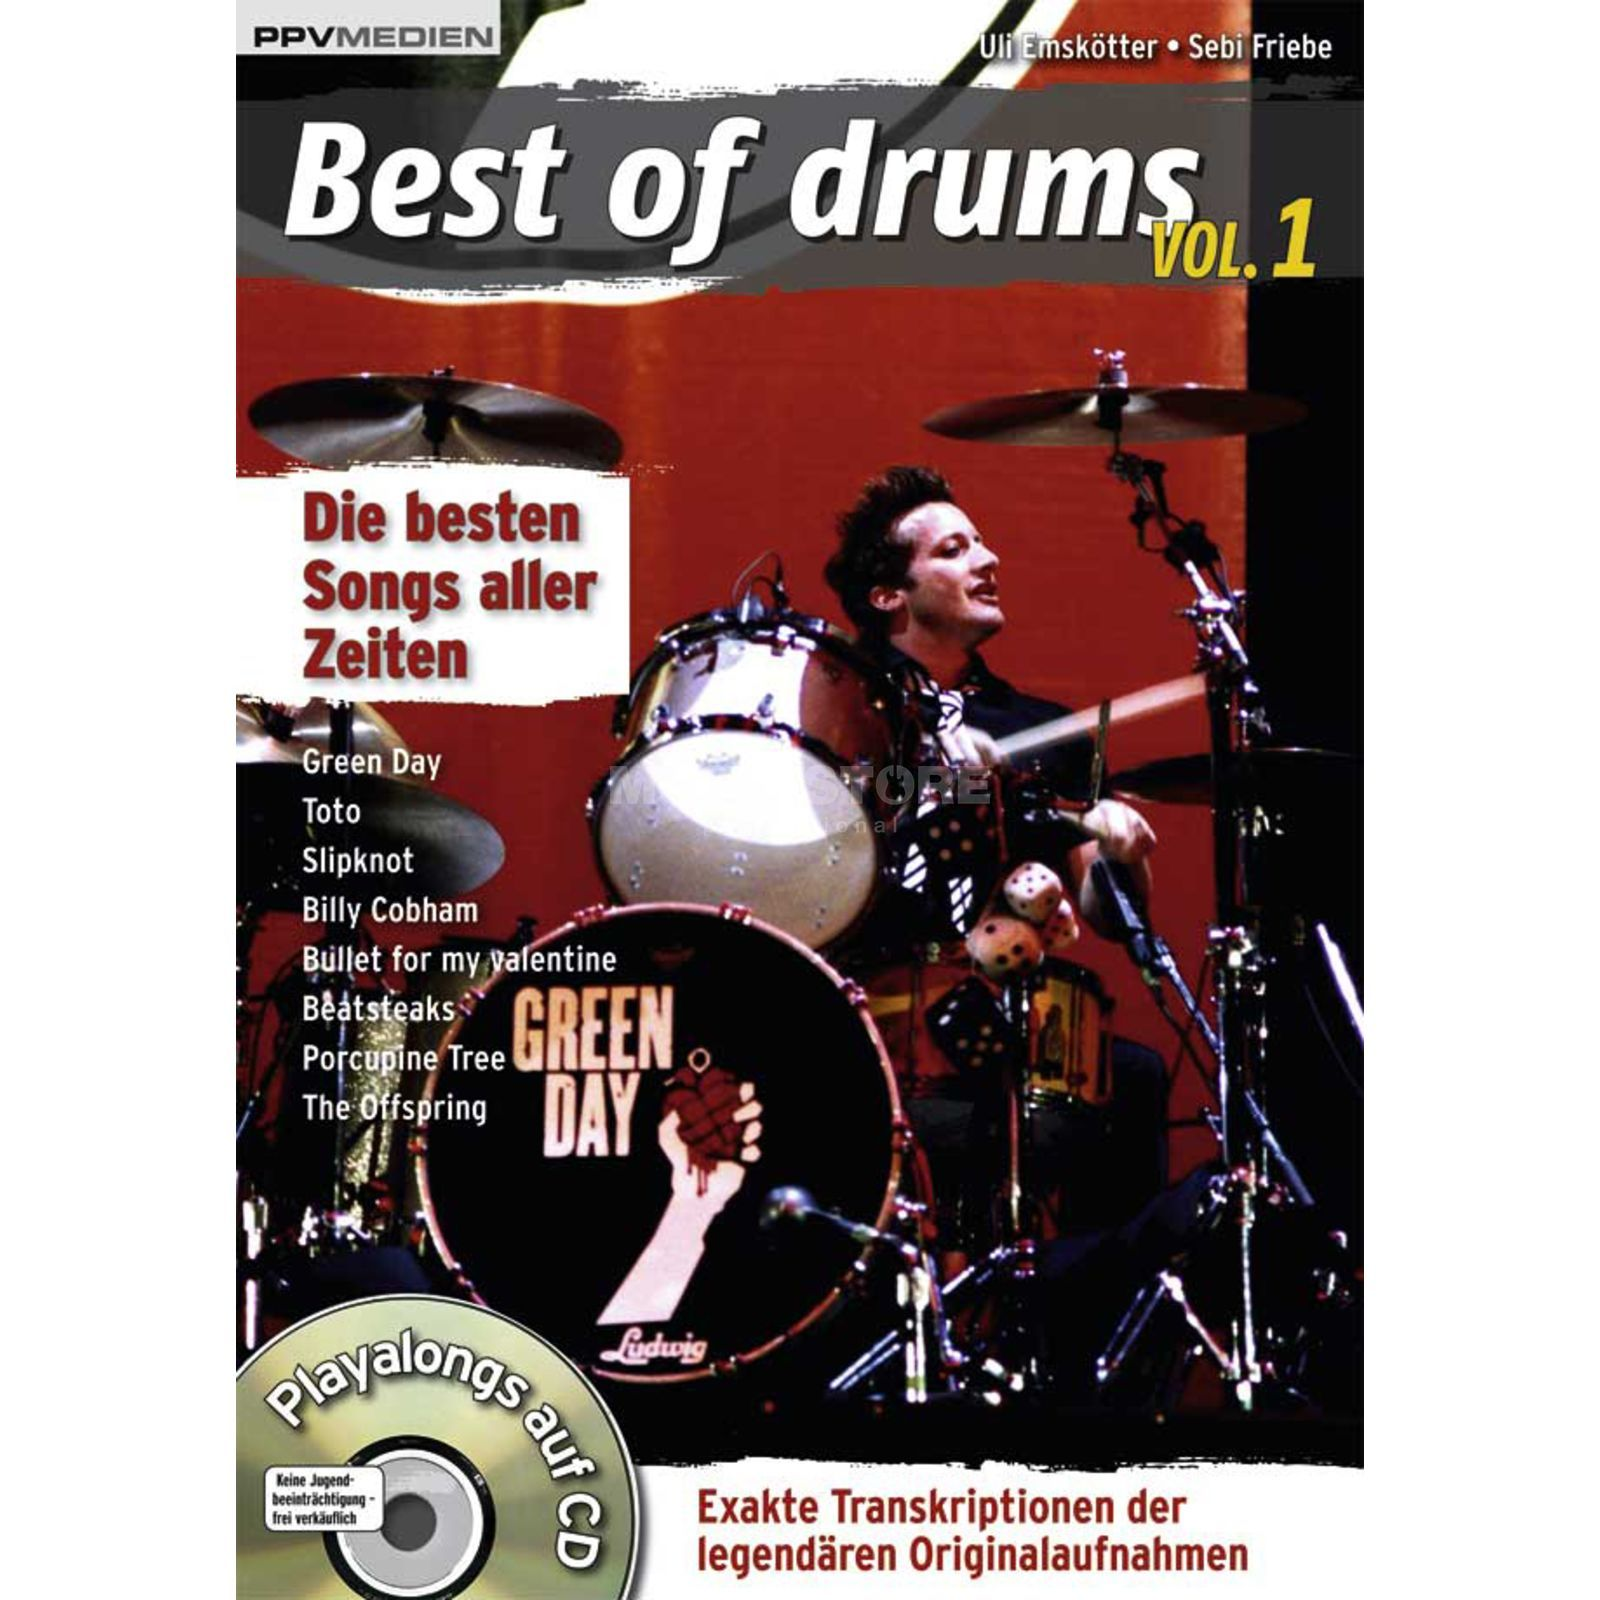 PPV Medien Best of drumheads!! Vol. 1 Playalong und Transkriptionen Produktbillede